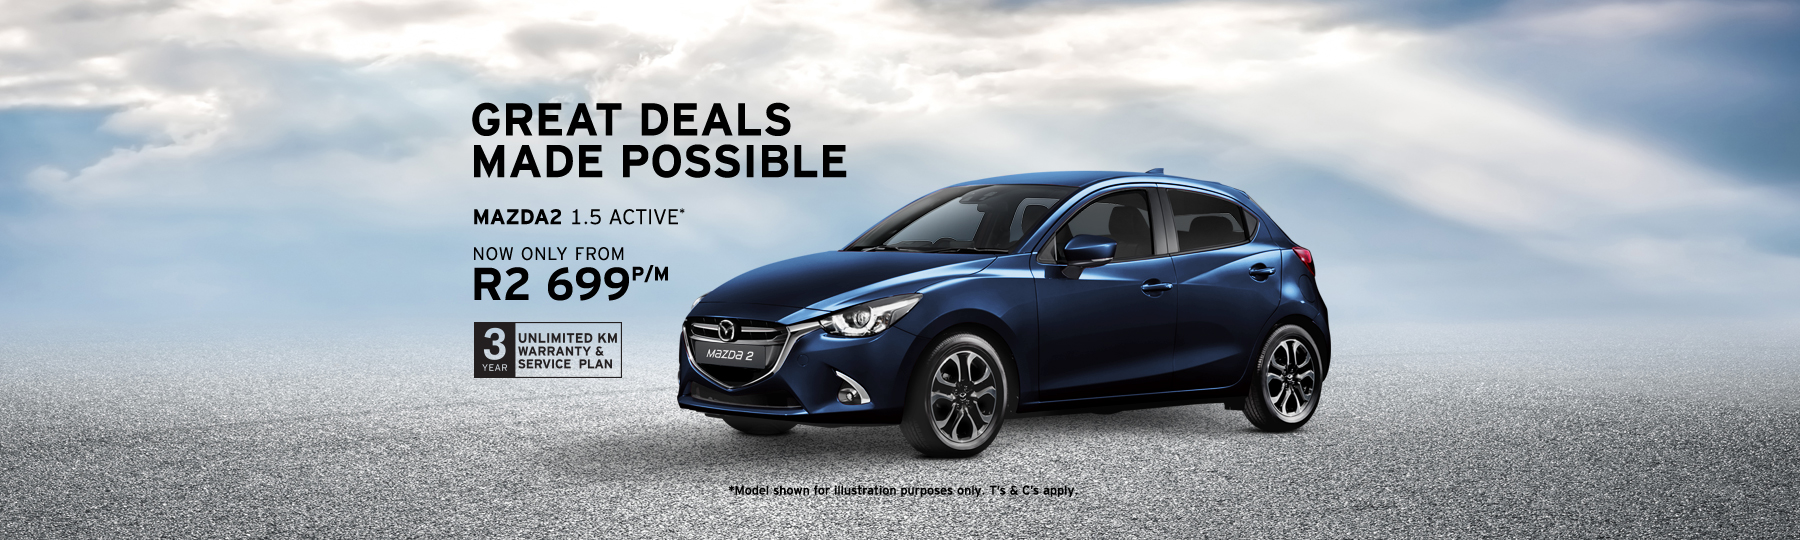 content/great-deals-made-possible-mazda2-active.html